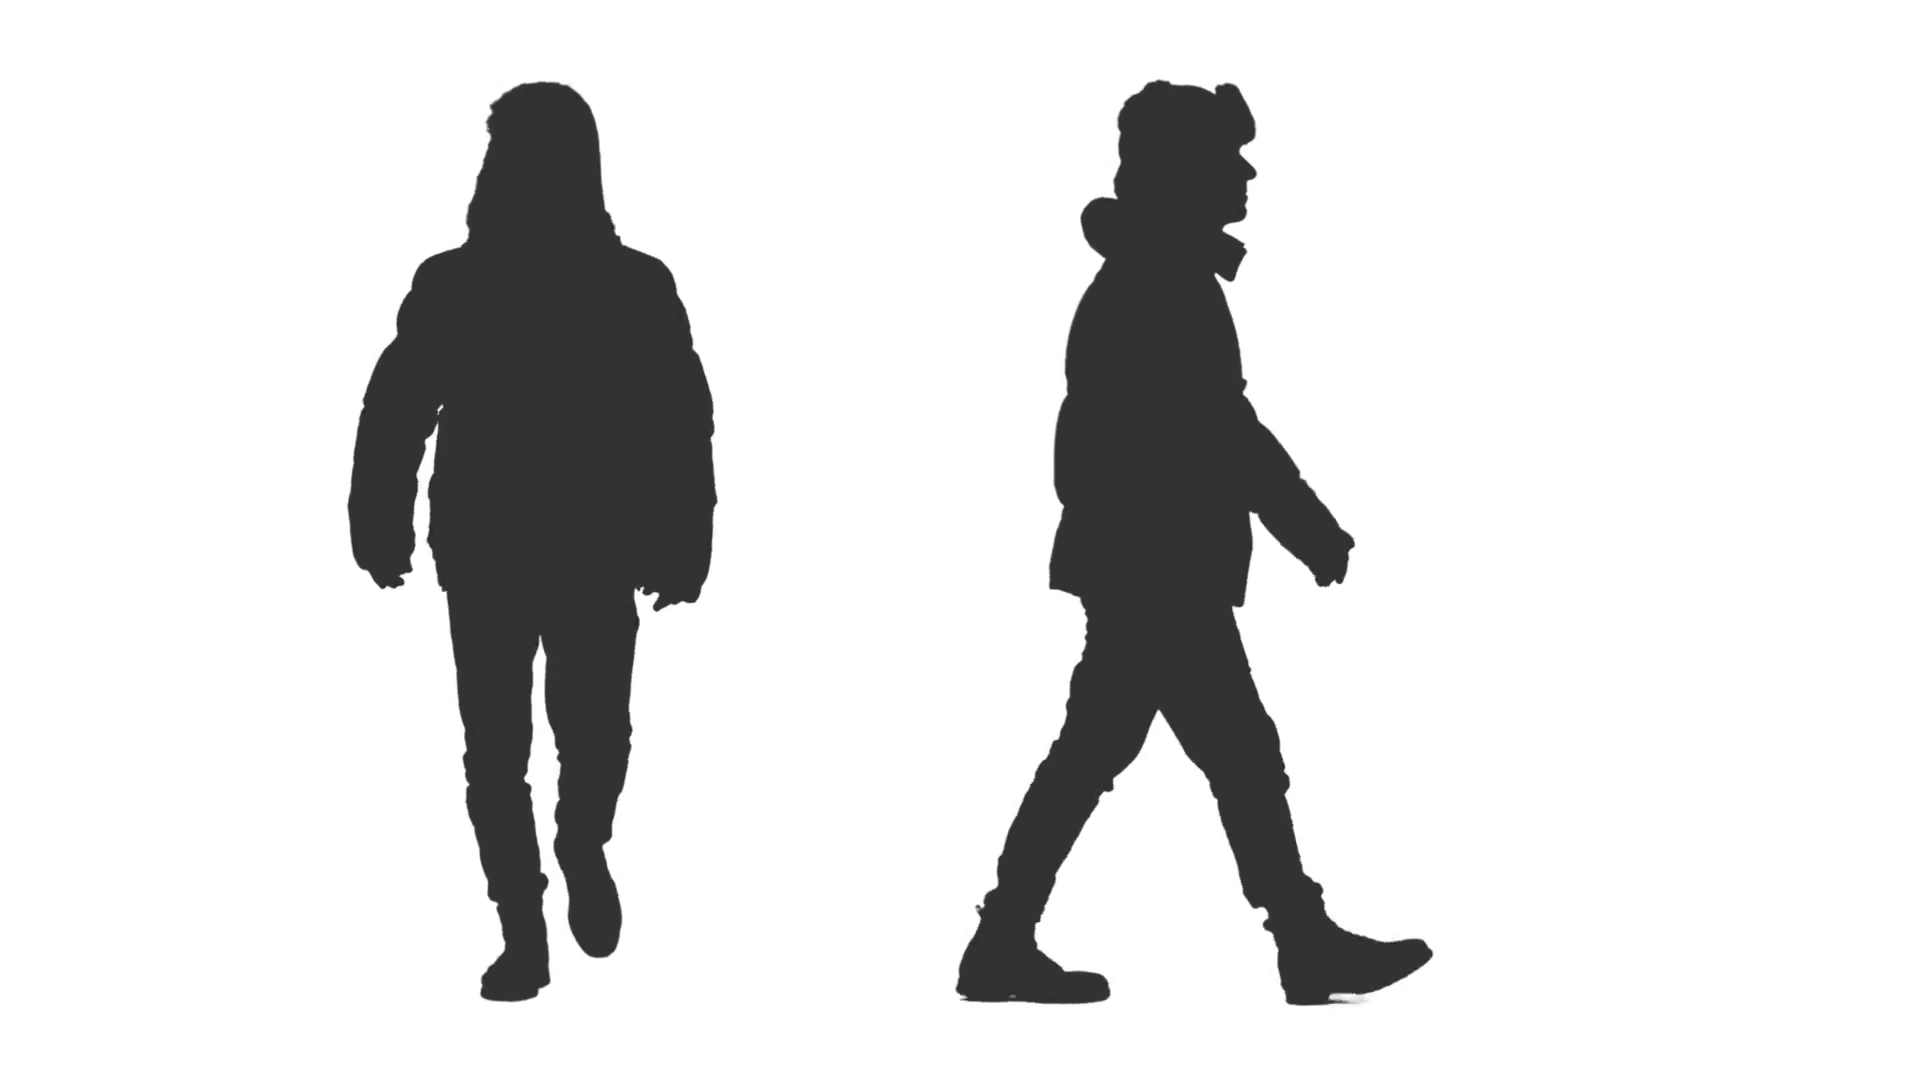 1920x1080 Male Silhouette Walking In Winter Clothes, 2 In 1, Alpha Channel